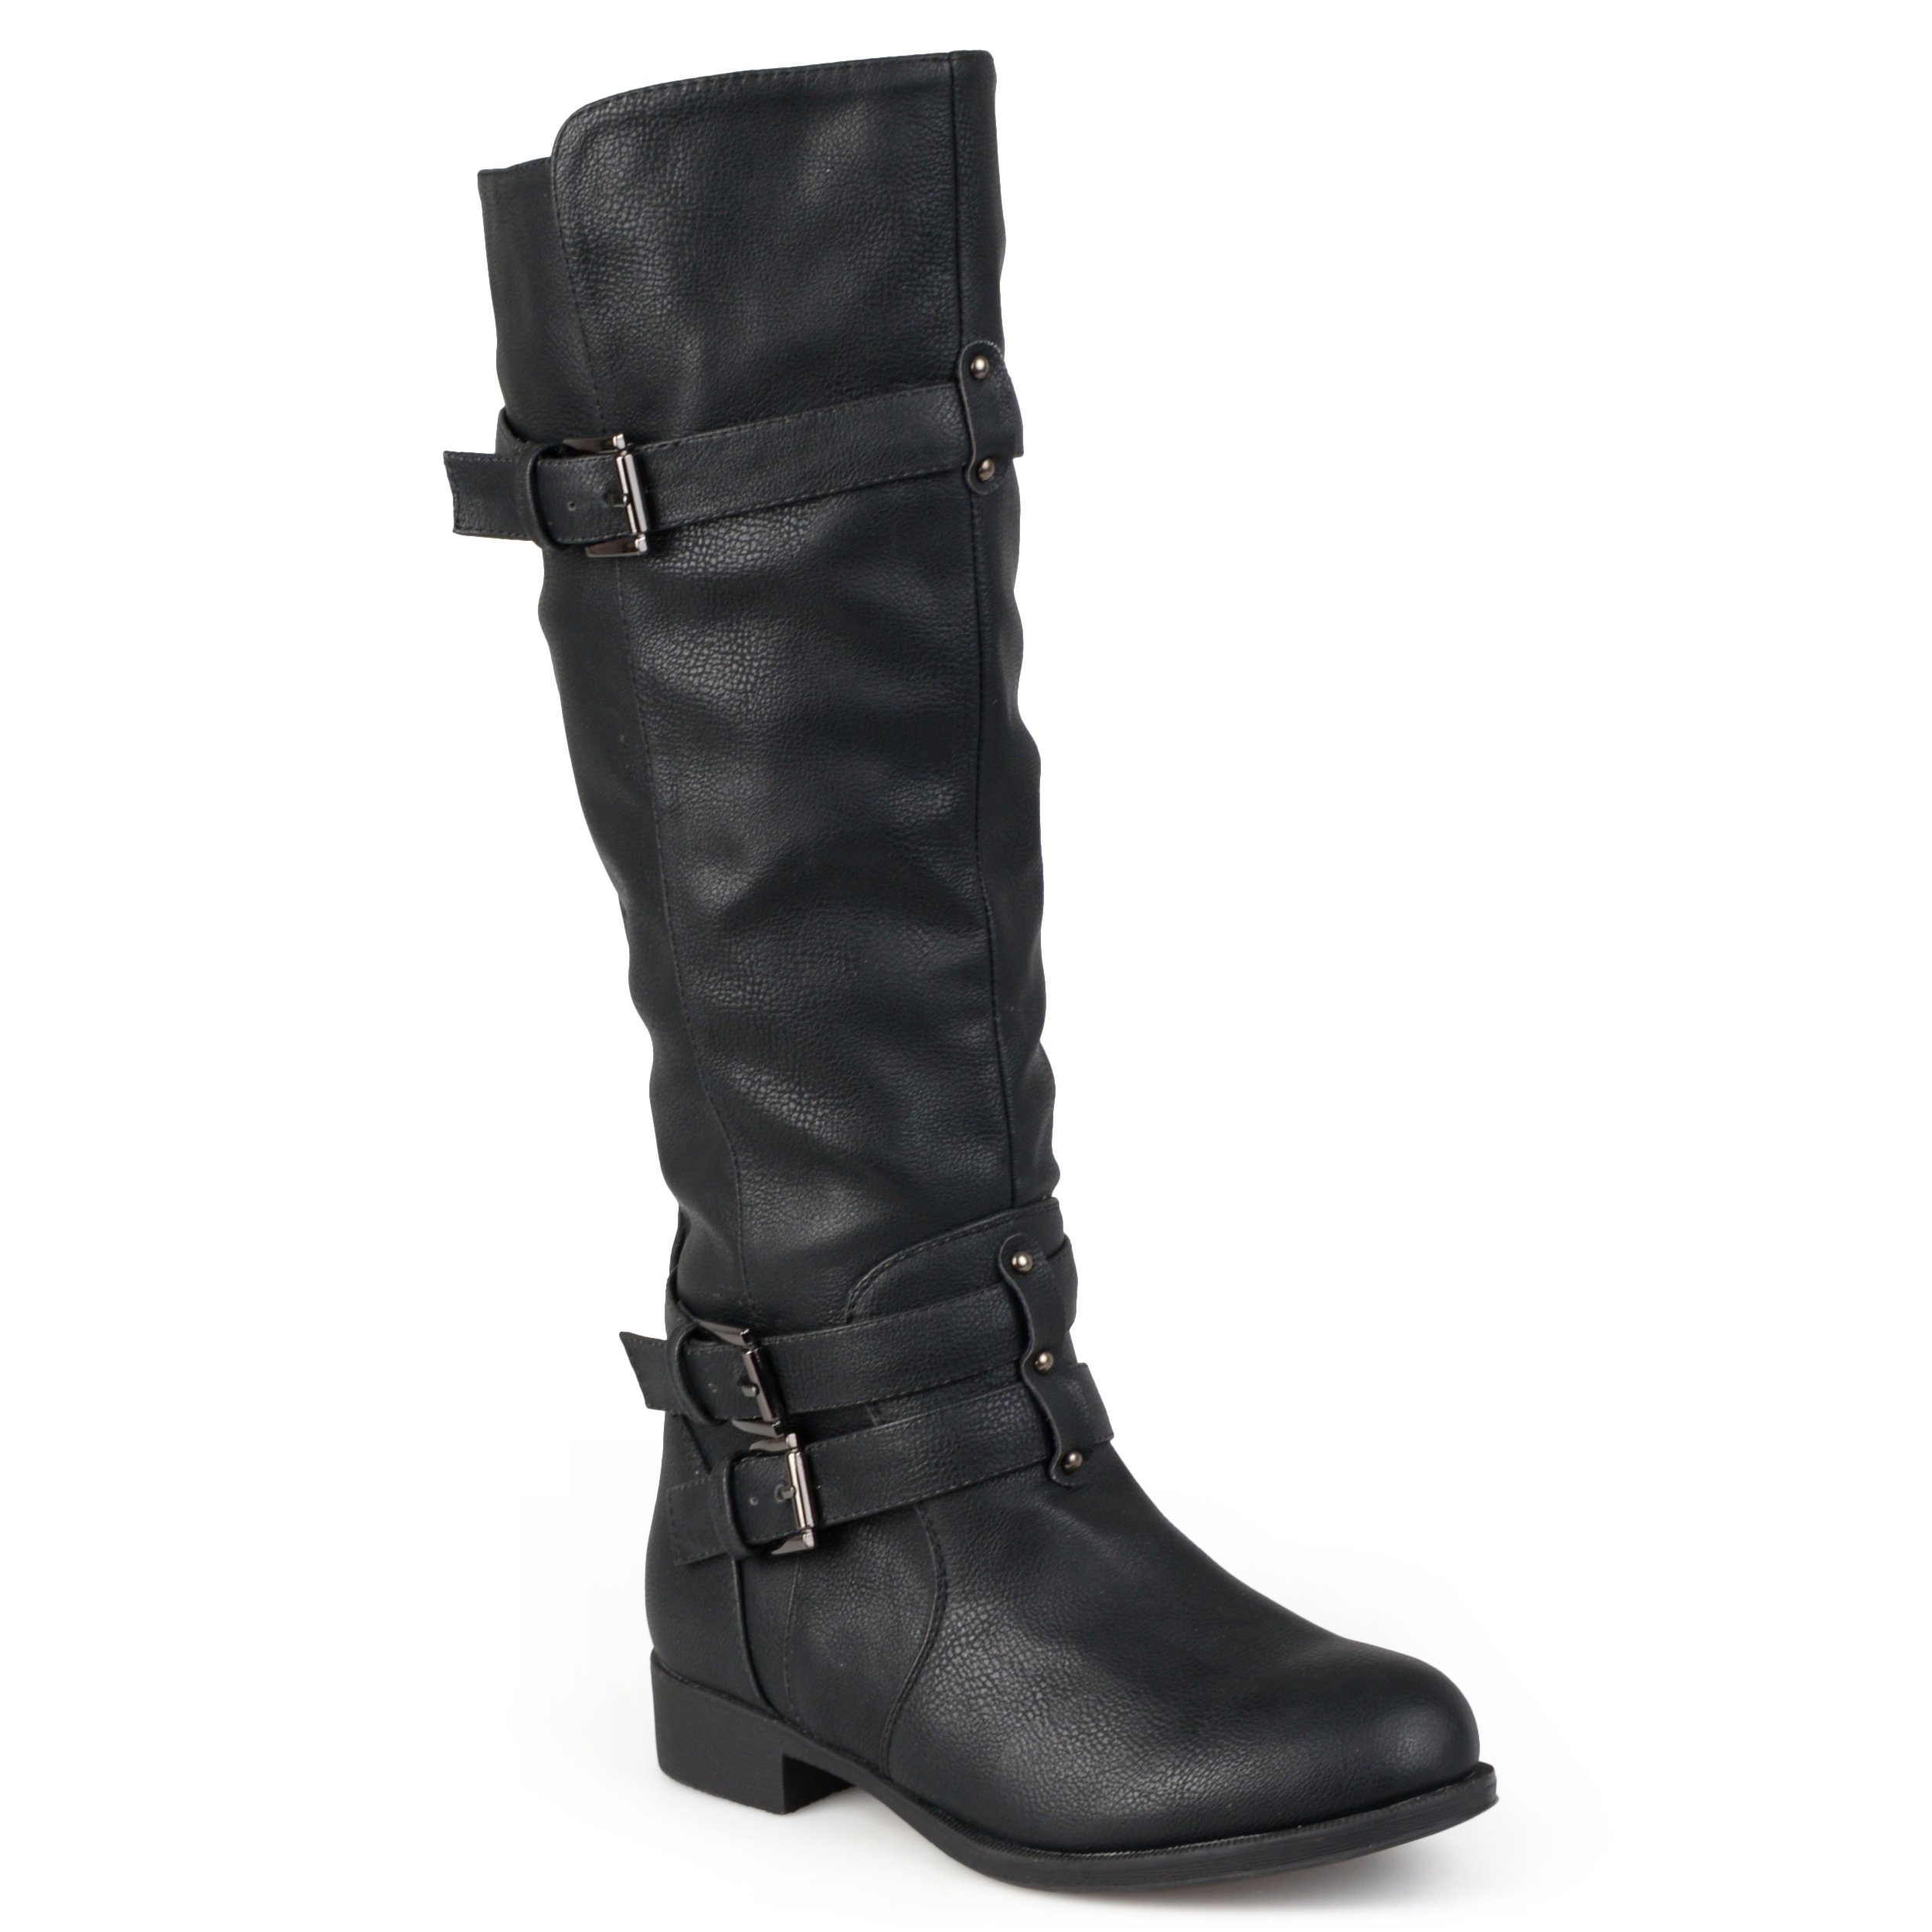 Journee Collection Womens Regular Sized and Wide-Calf Knee-High Buckle Riding Boots Black, 7 Regular US